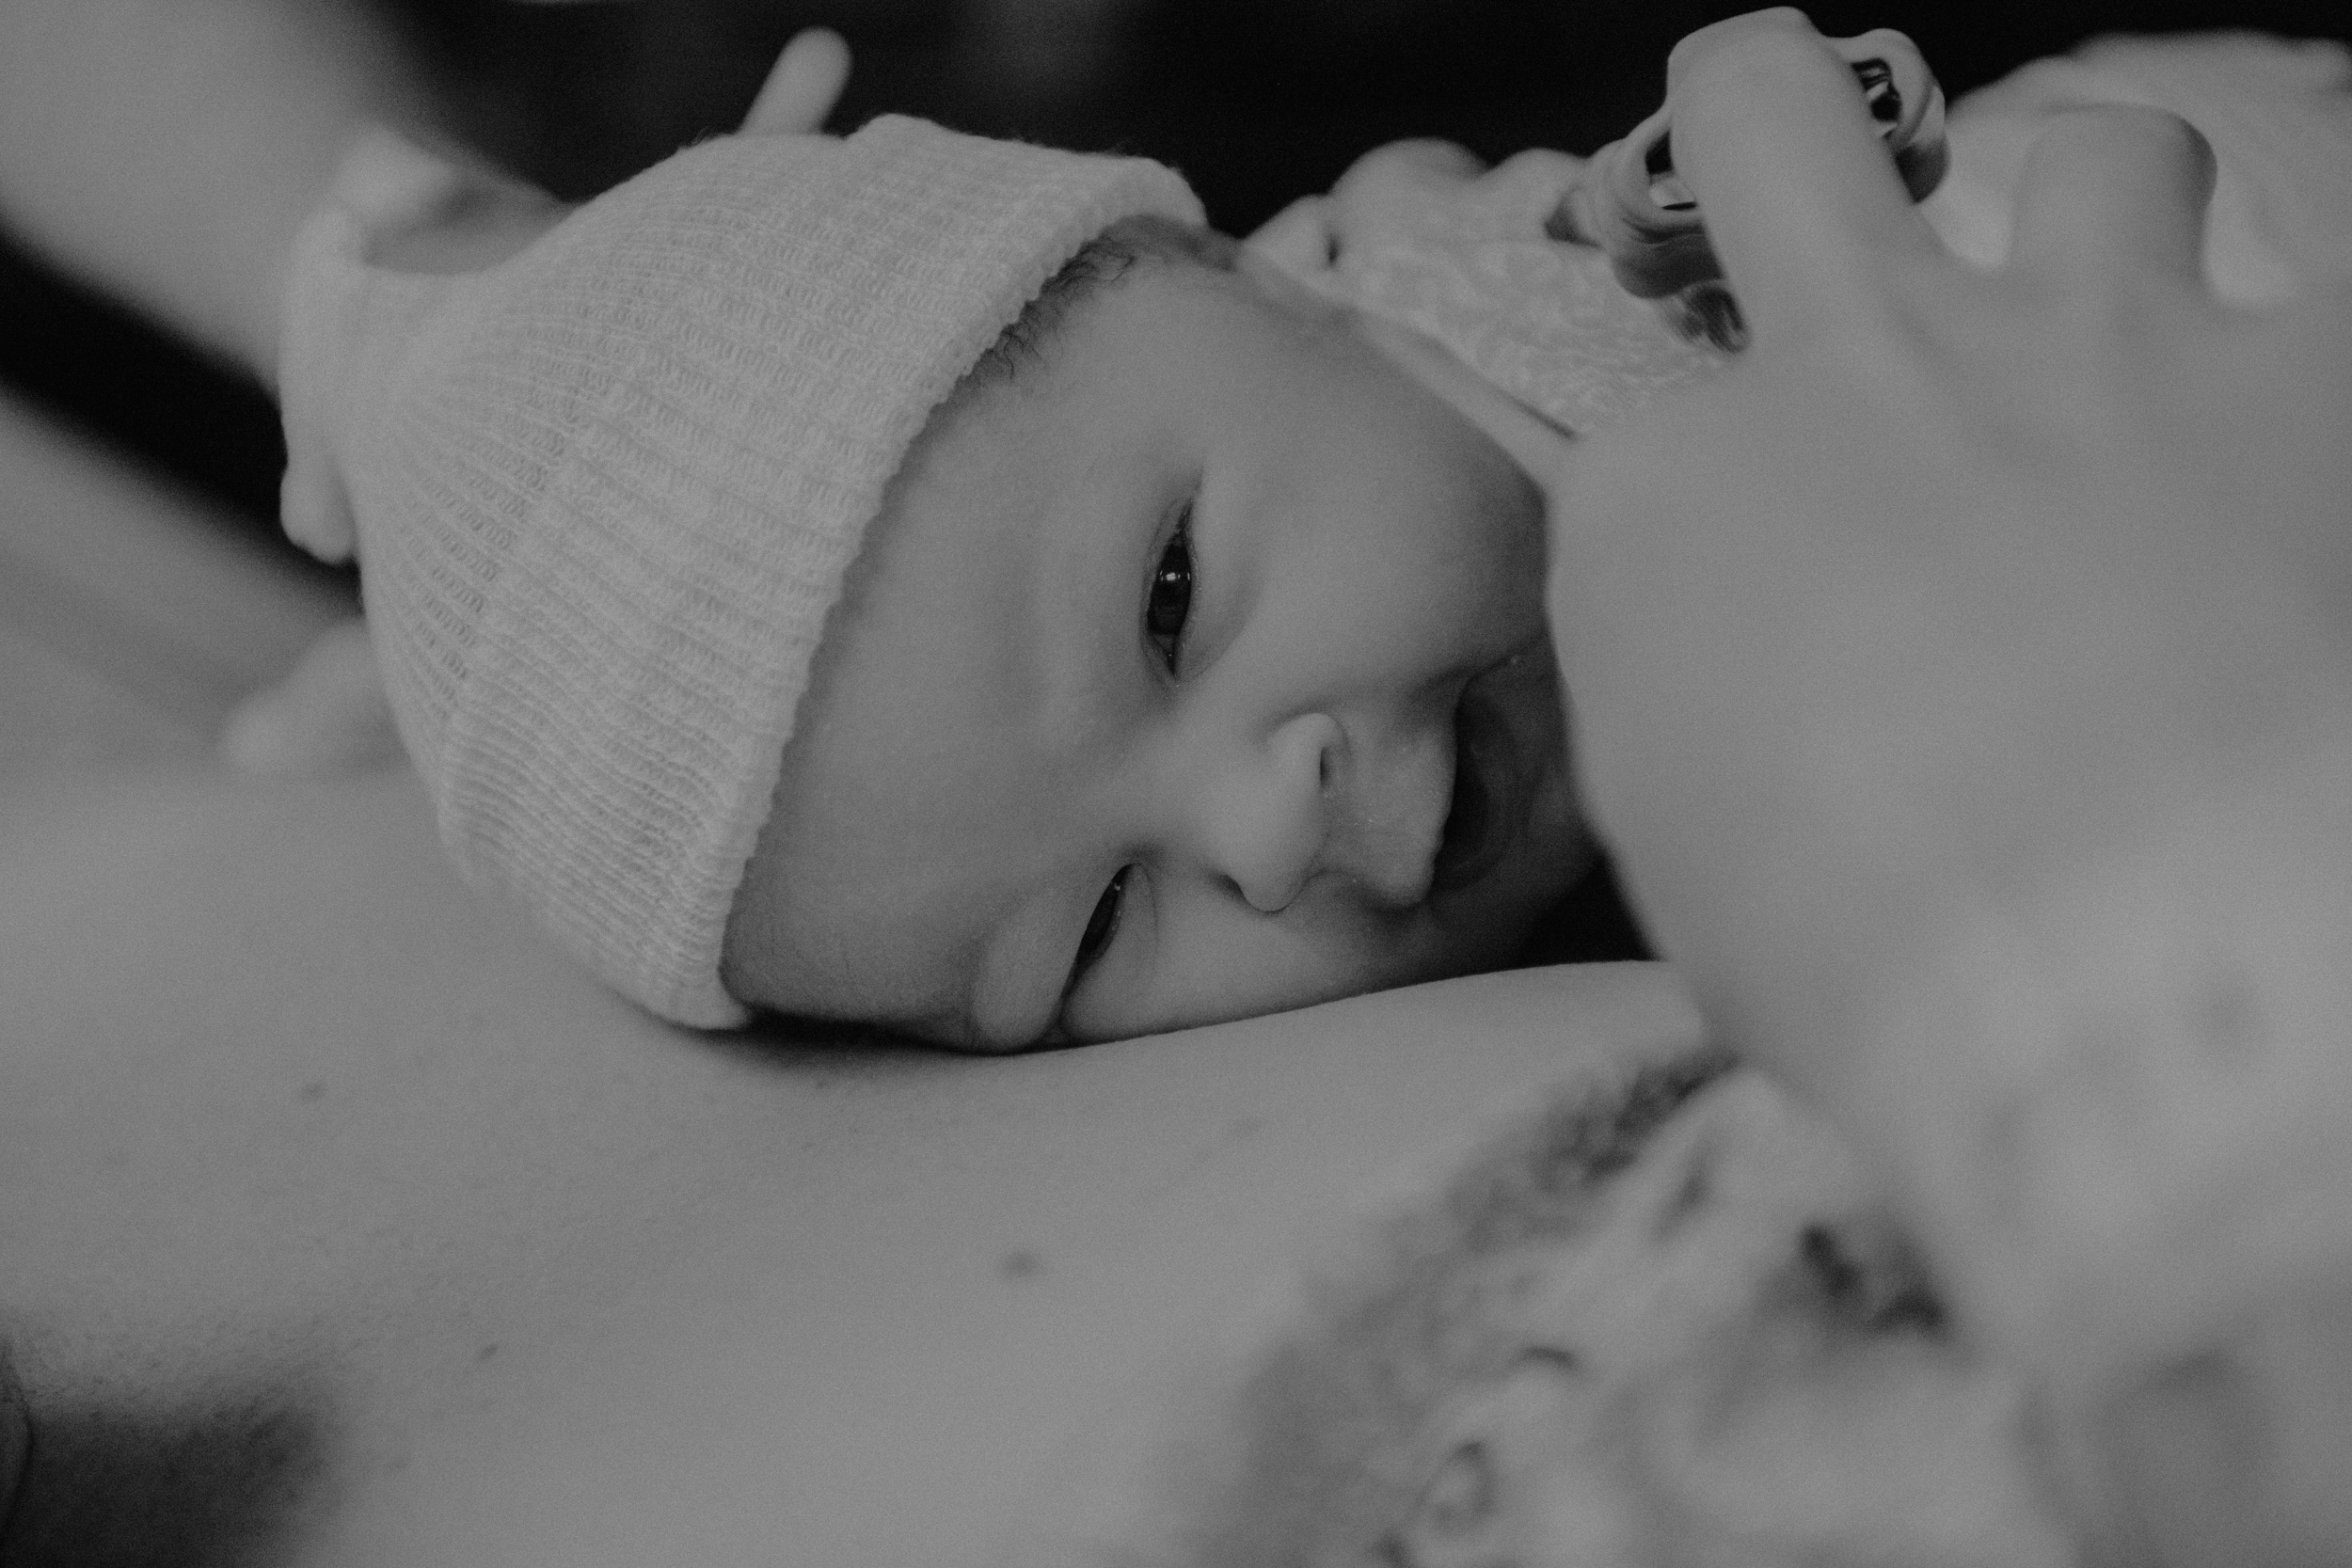 baby lying skin to skin on mom's chest after delivery